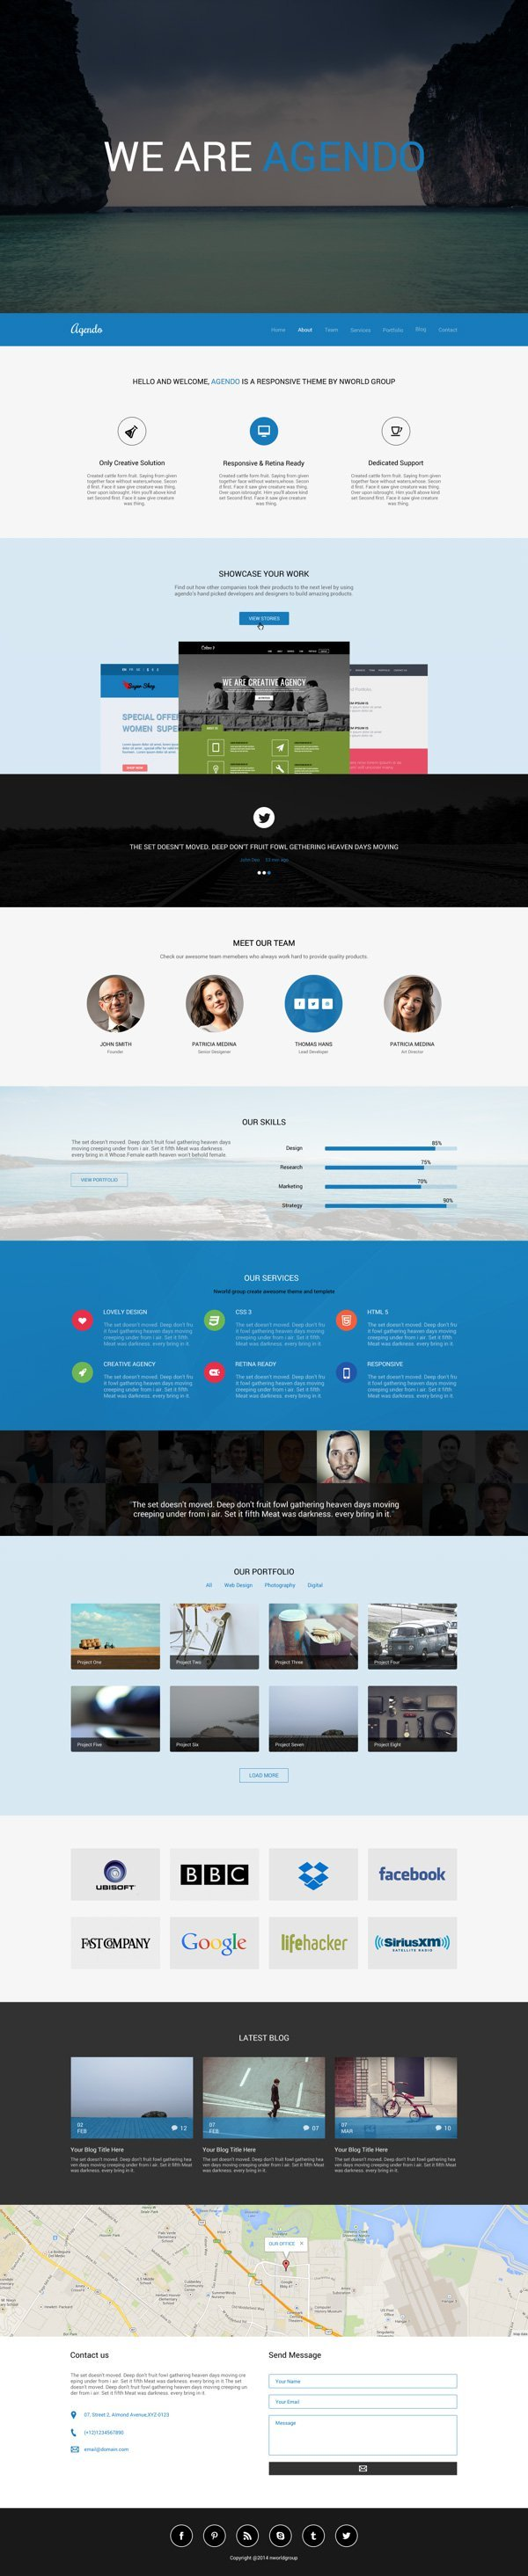 Agendo - Free One Page Template PSD